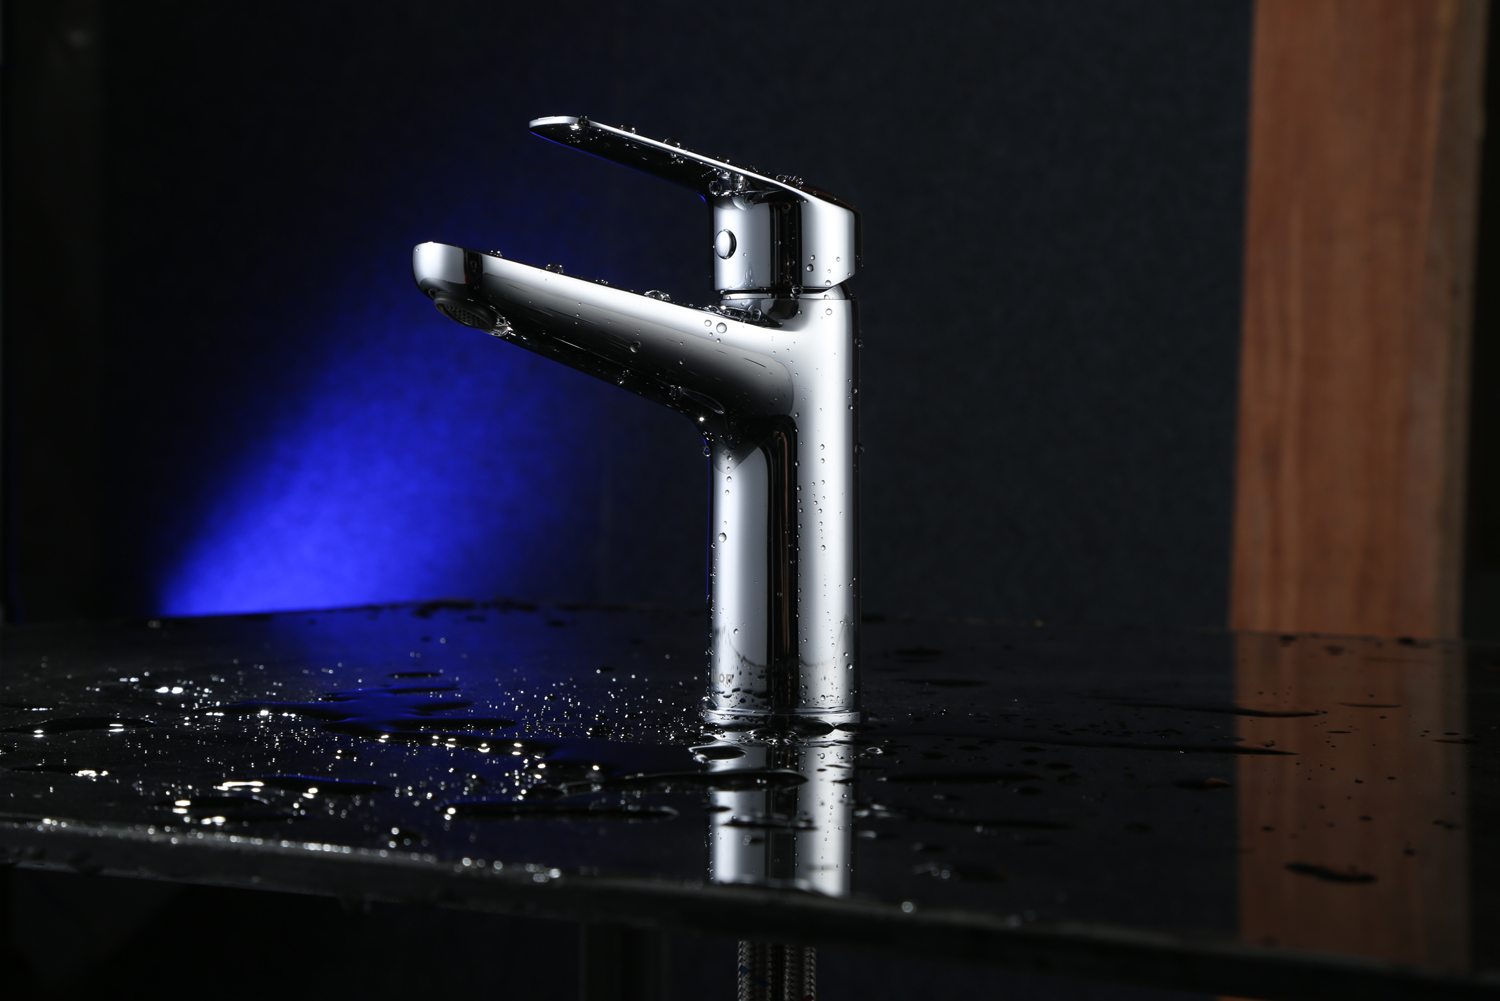 Stylish and shiny: tap range